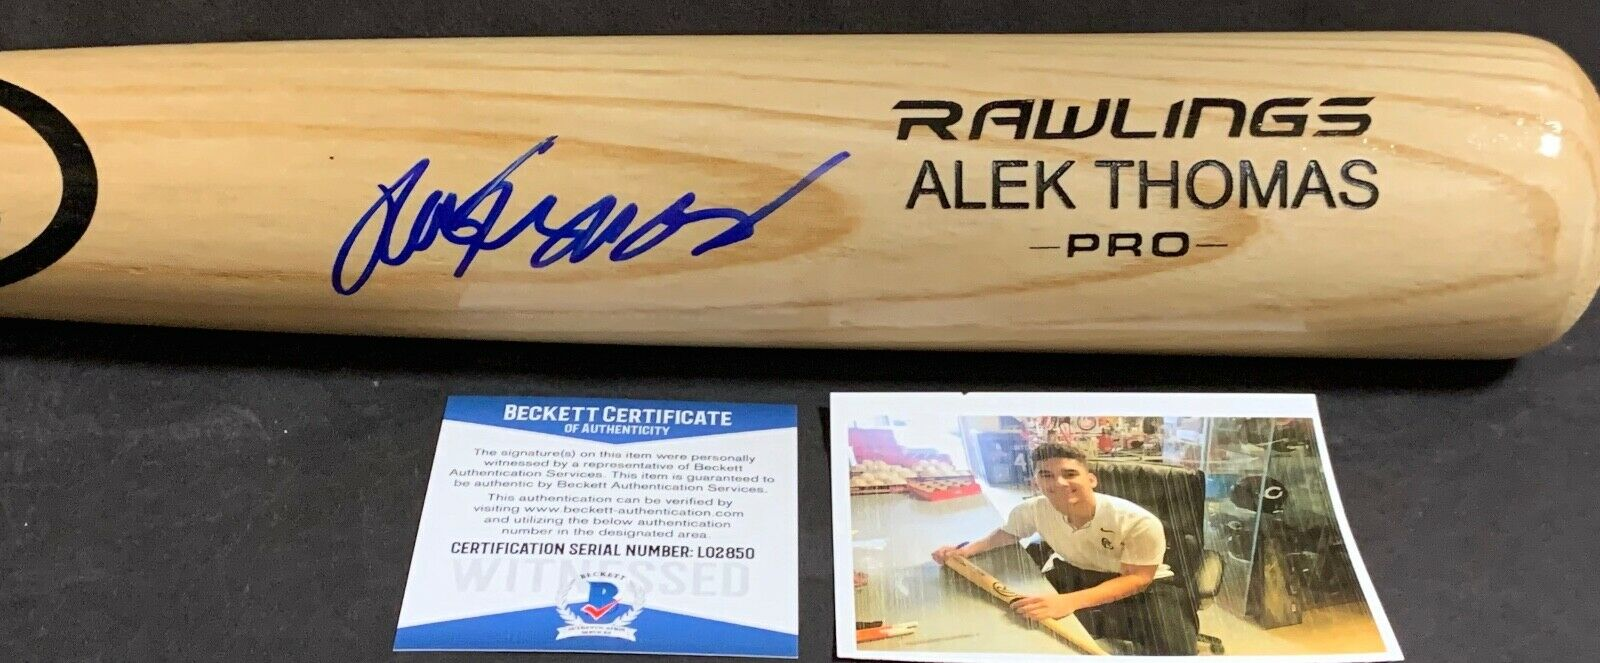 Alek Thomas Arizona Diamondbacks Signed Engraved Bat Beckett Wit COA Blonde